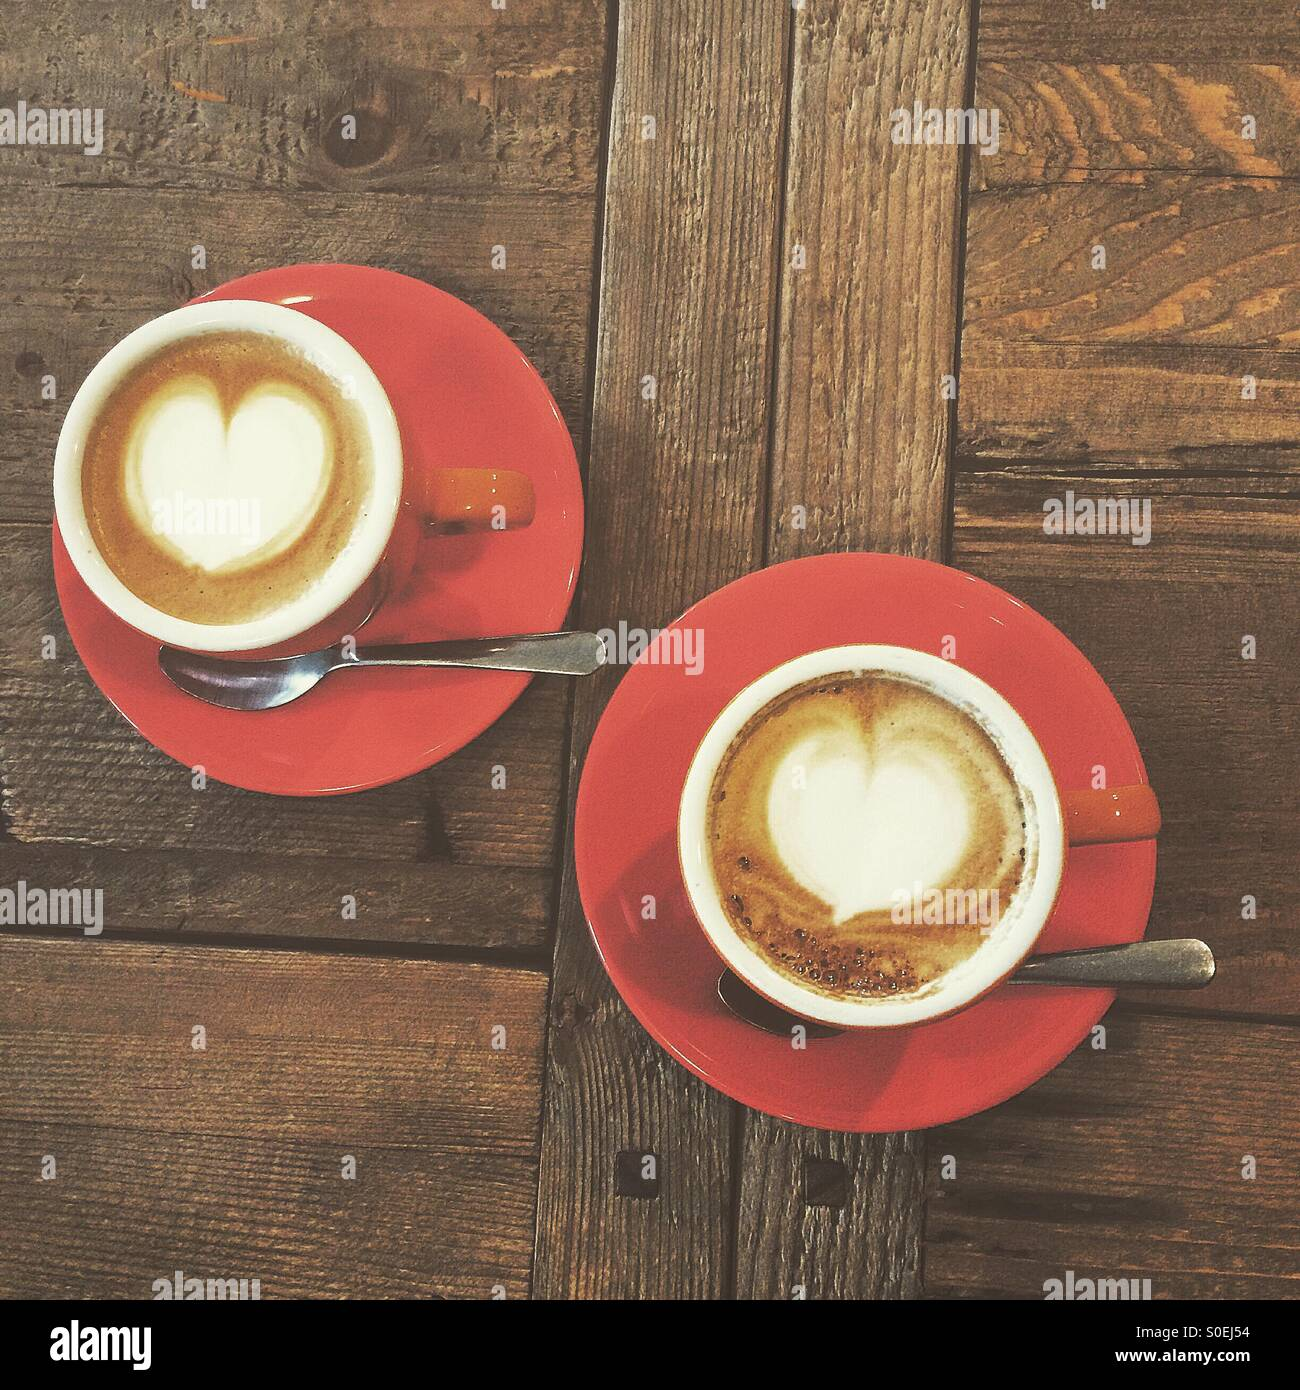 Coffee and Love - Stock Image